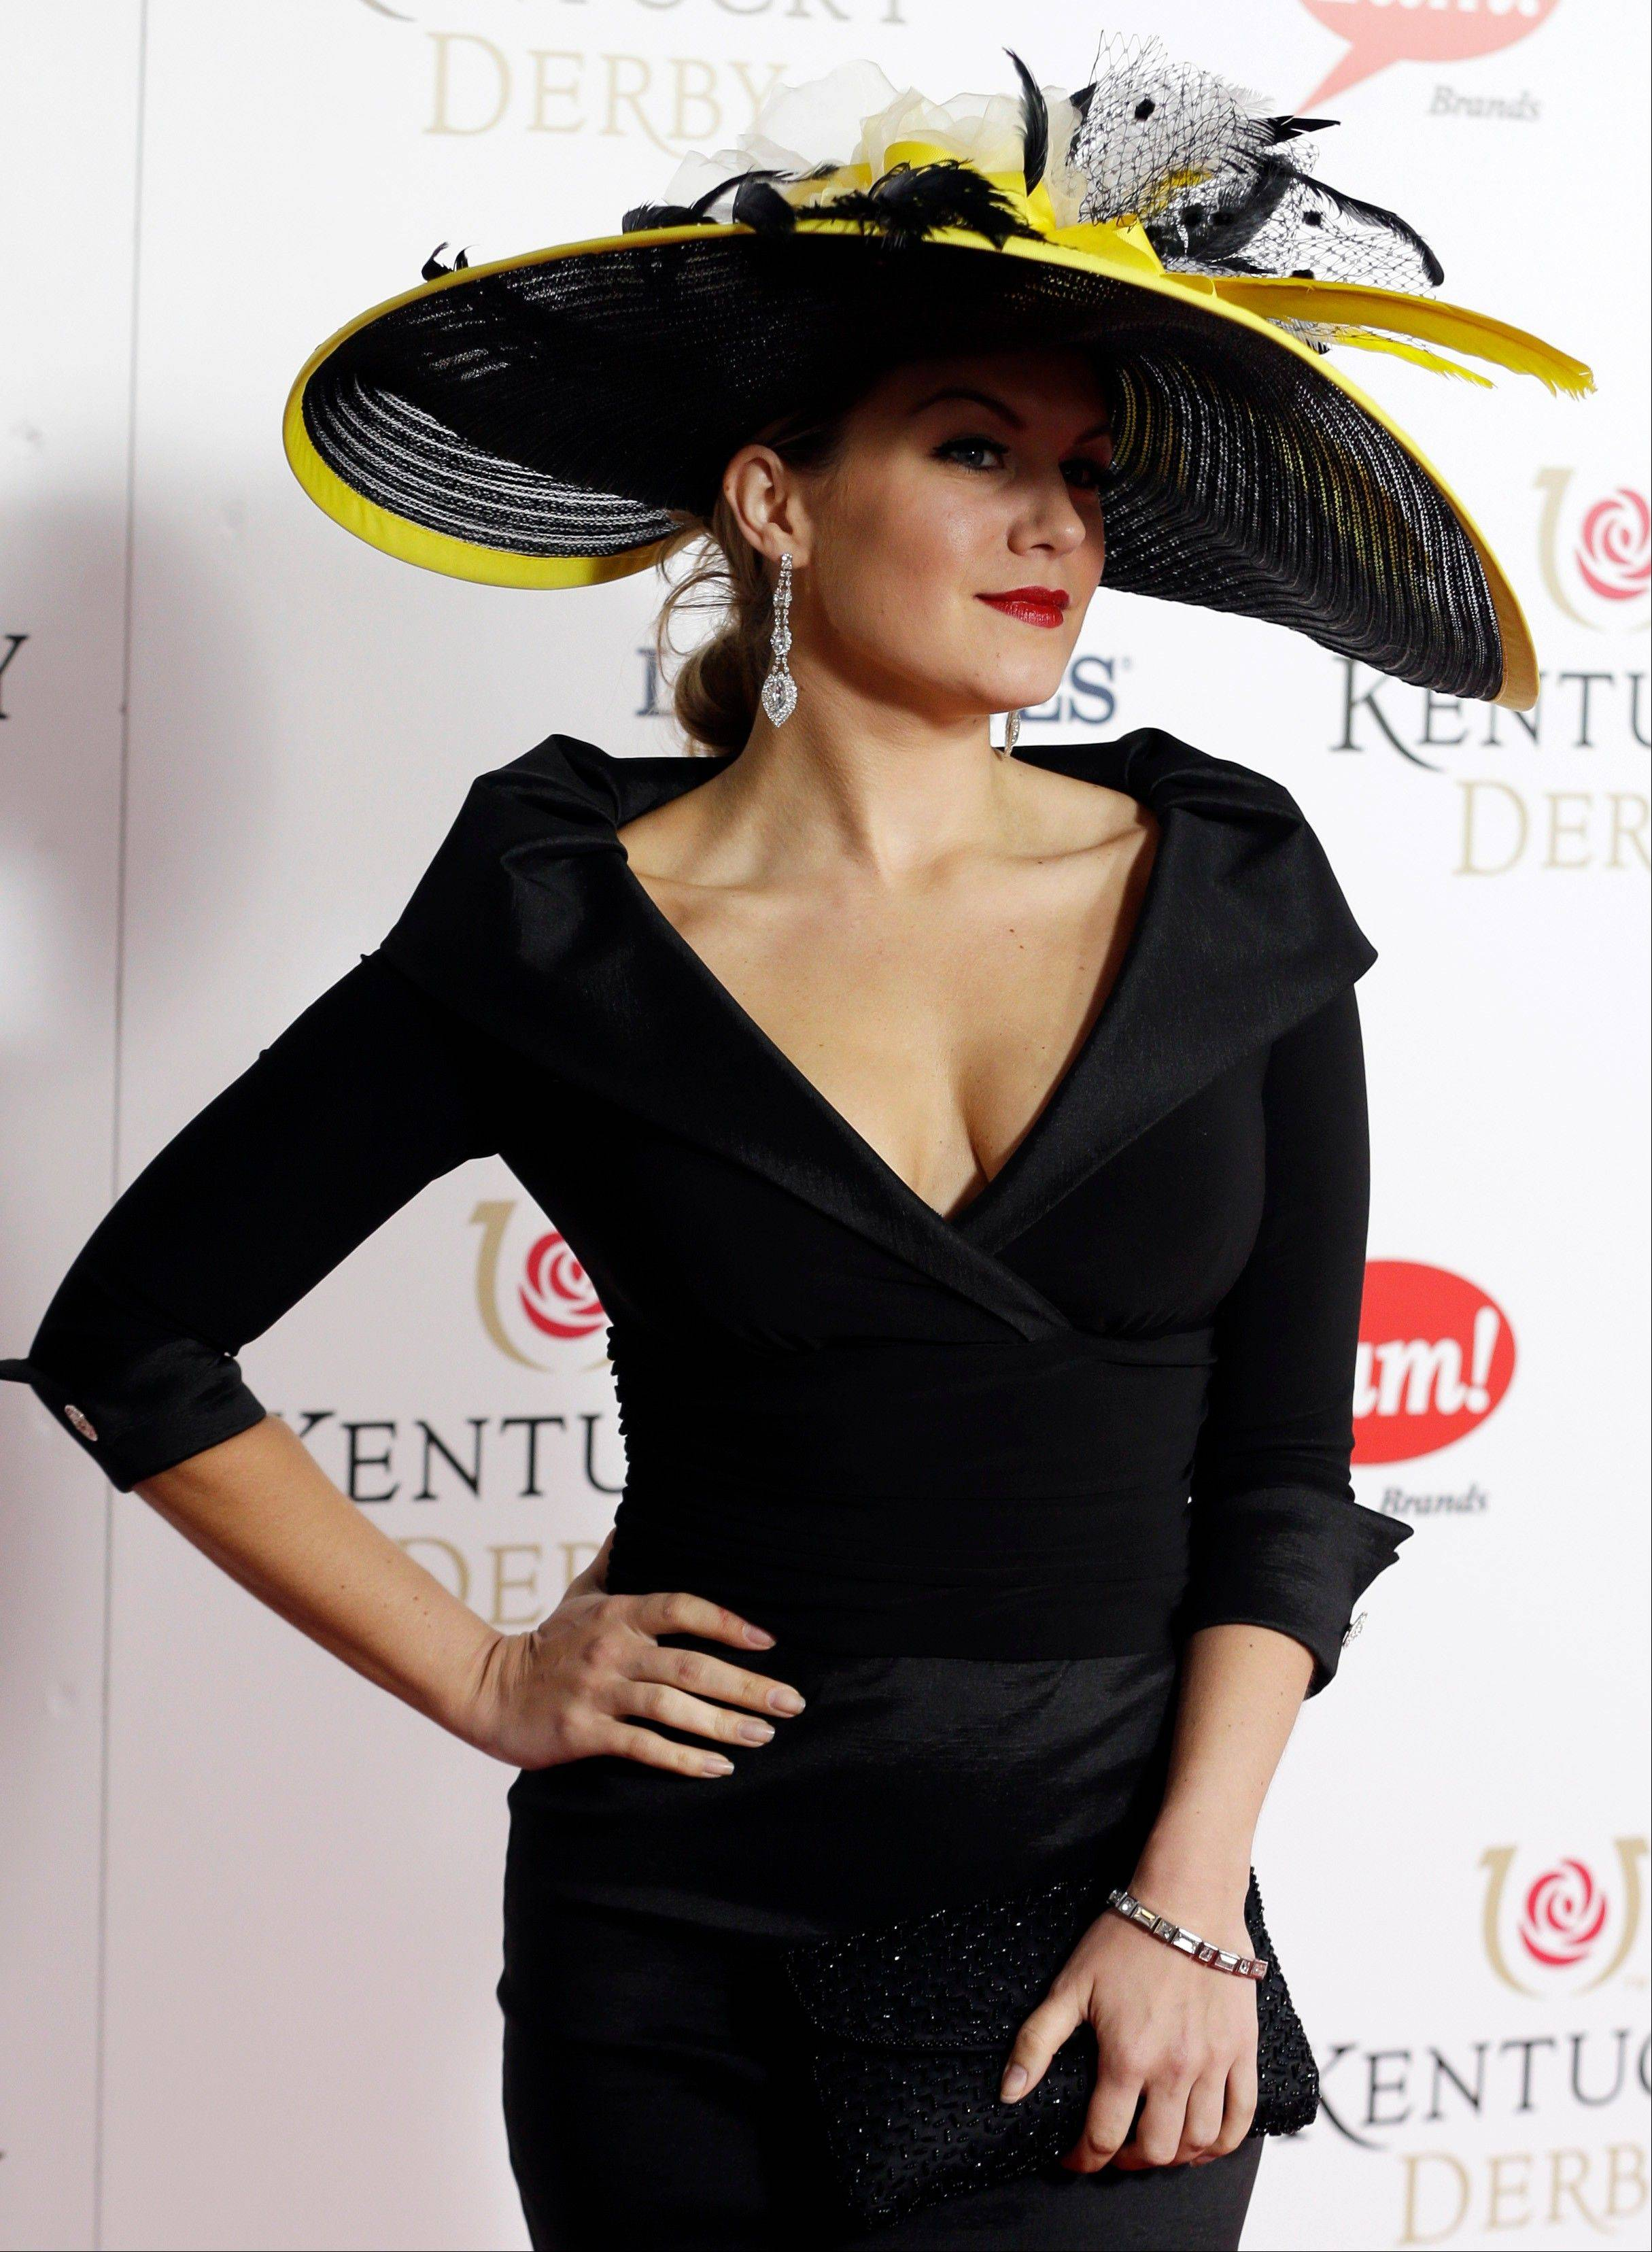 Miss American 2013 Mallory Hagan arrives to attend the 139th Kentucky Derby.